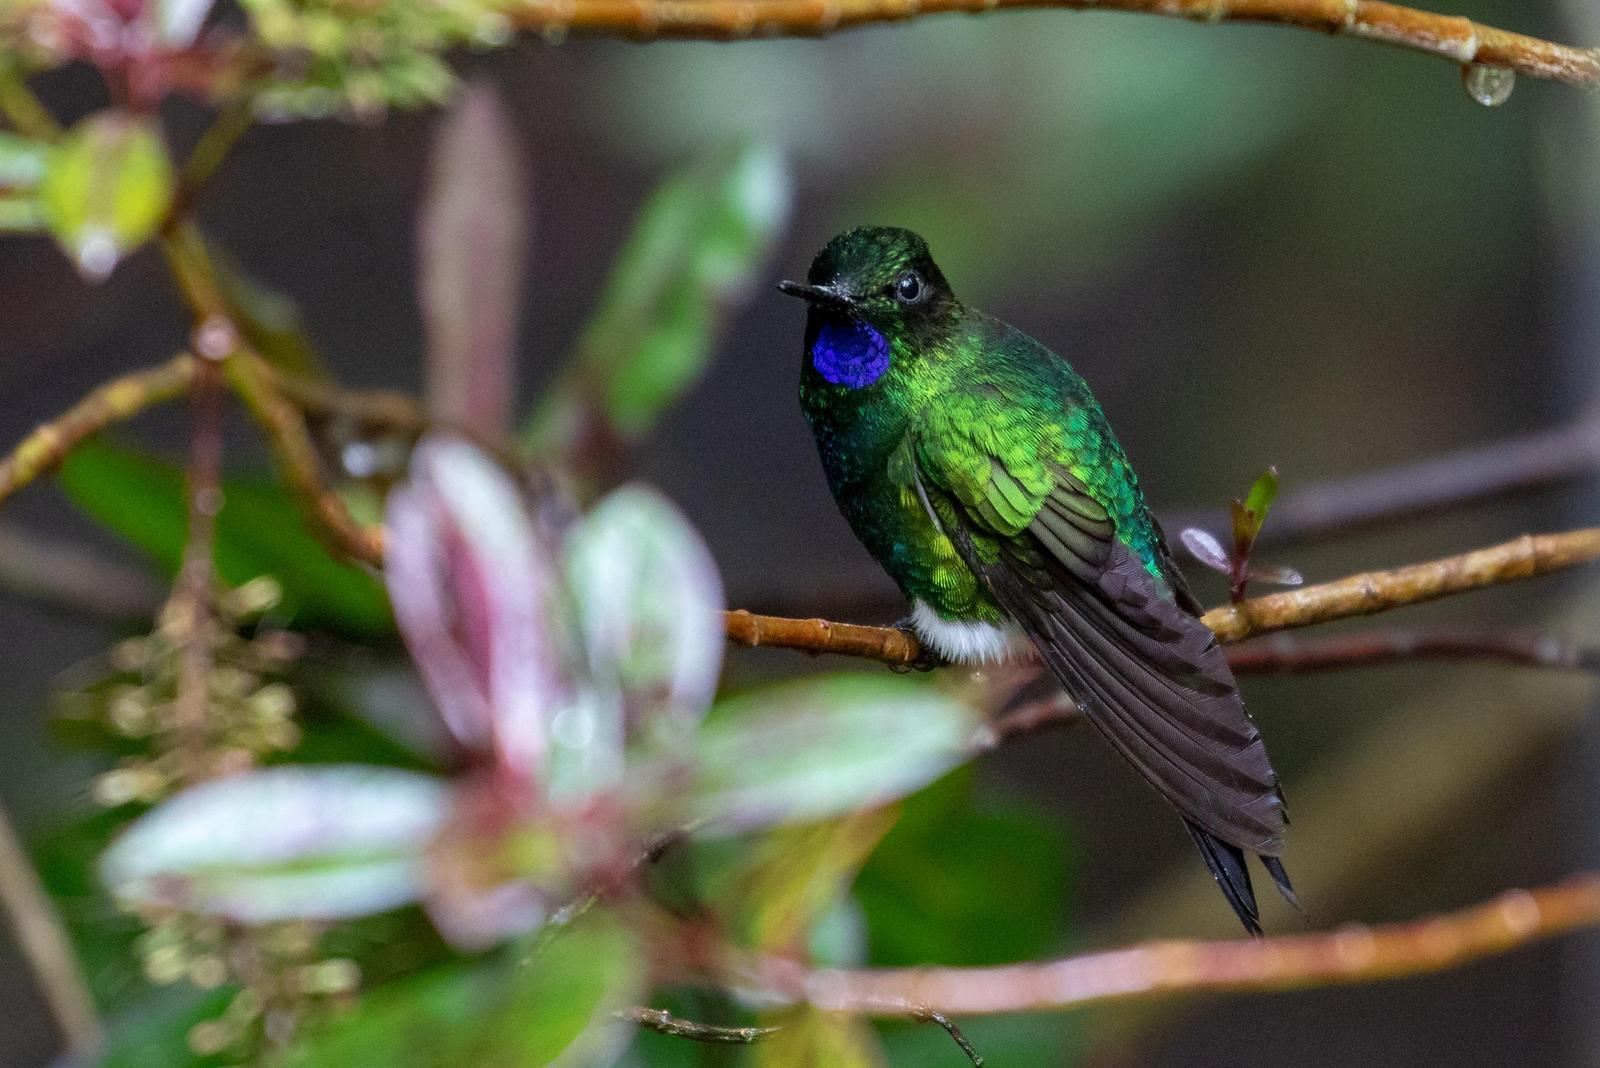 Glowing Puffleg Photo by Drew Weber